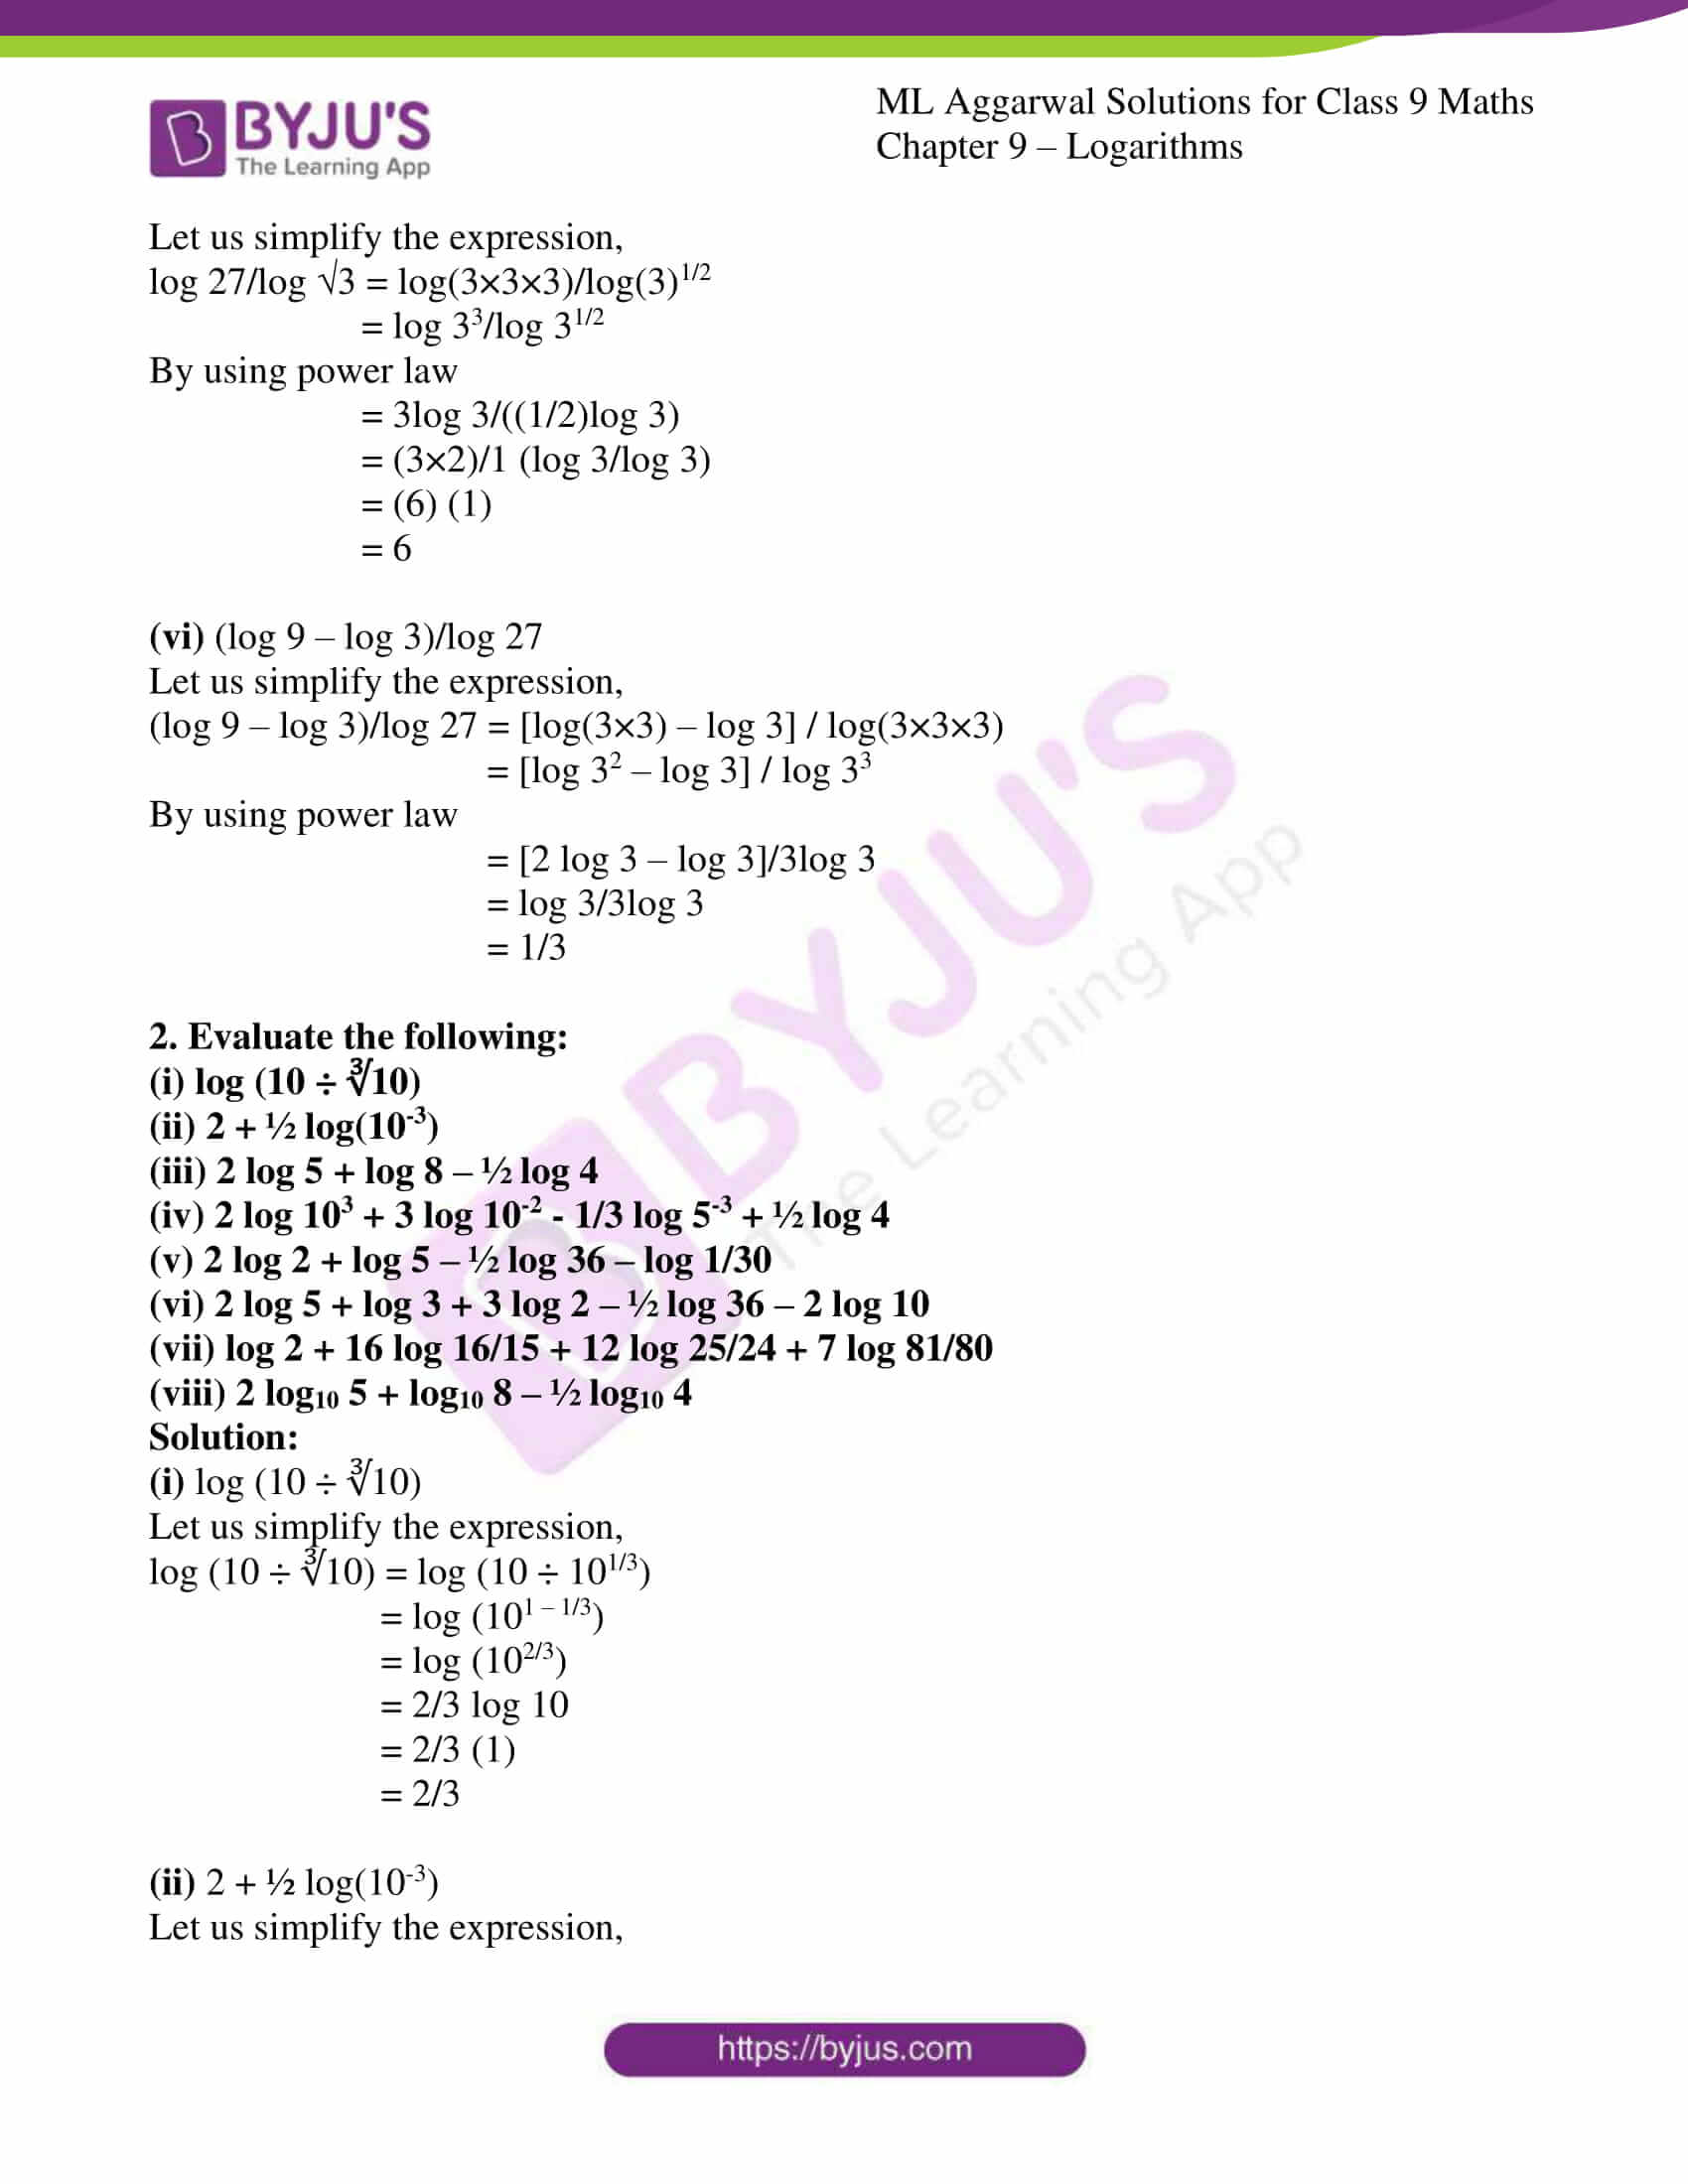 ml aggarwal solutions for class 9 maths chapter 9 13